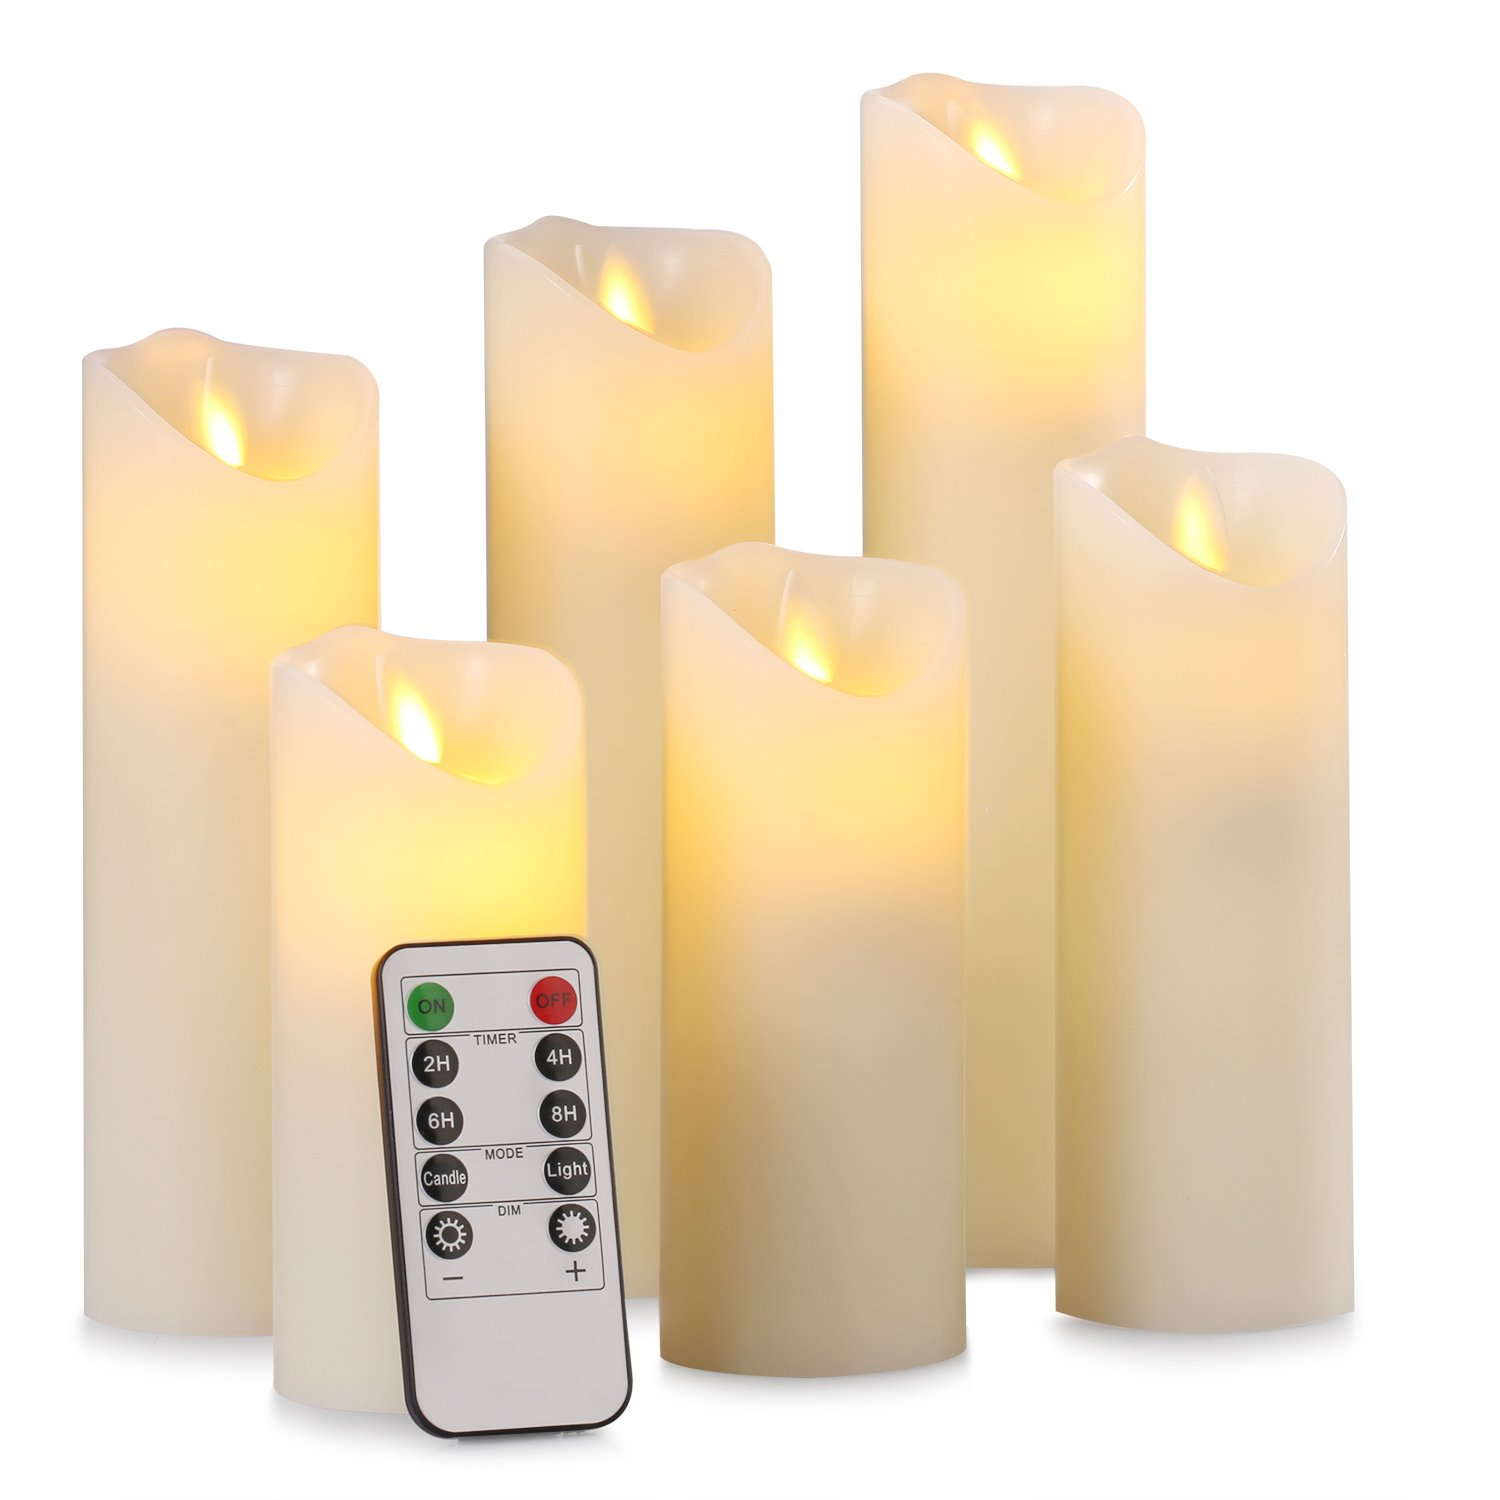 Pandaing 5'' 5.5'' 6'' 7'' 8'' 9'' Set of 6 Flameless Battery Operated Candles with Remote Control 2/4/6/8 Hours Timer Function, Classic Pillar Moving Flame Real Wax LED Candles